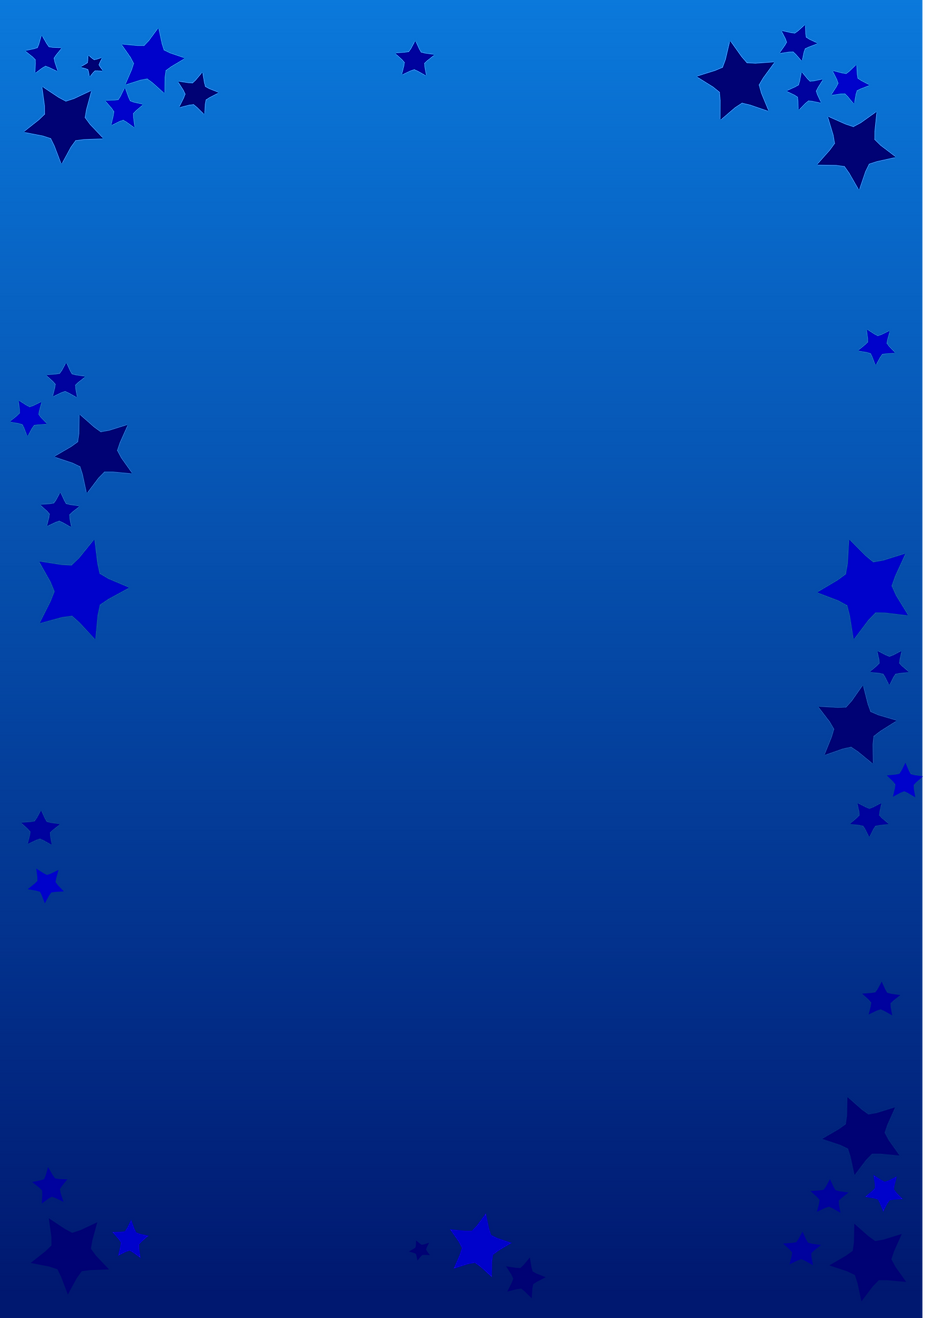 Blue star graphic